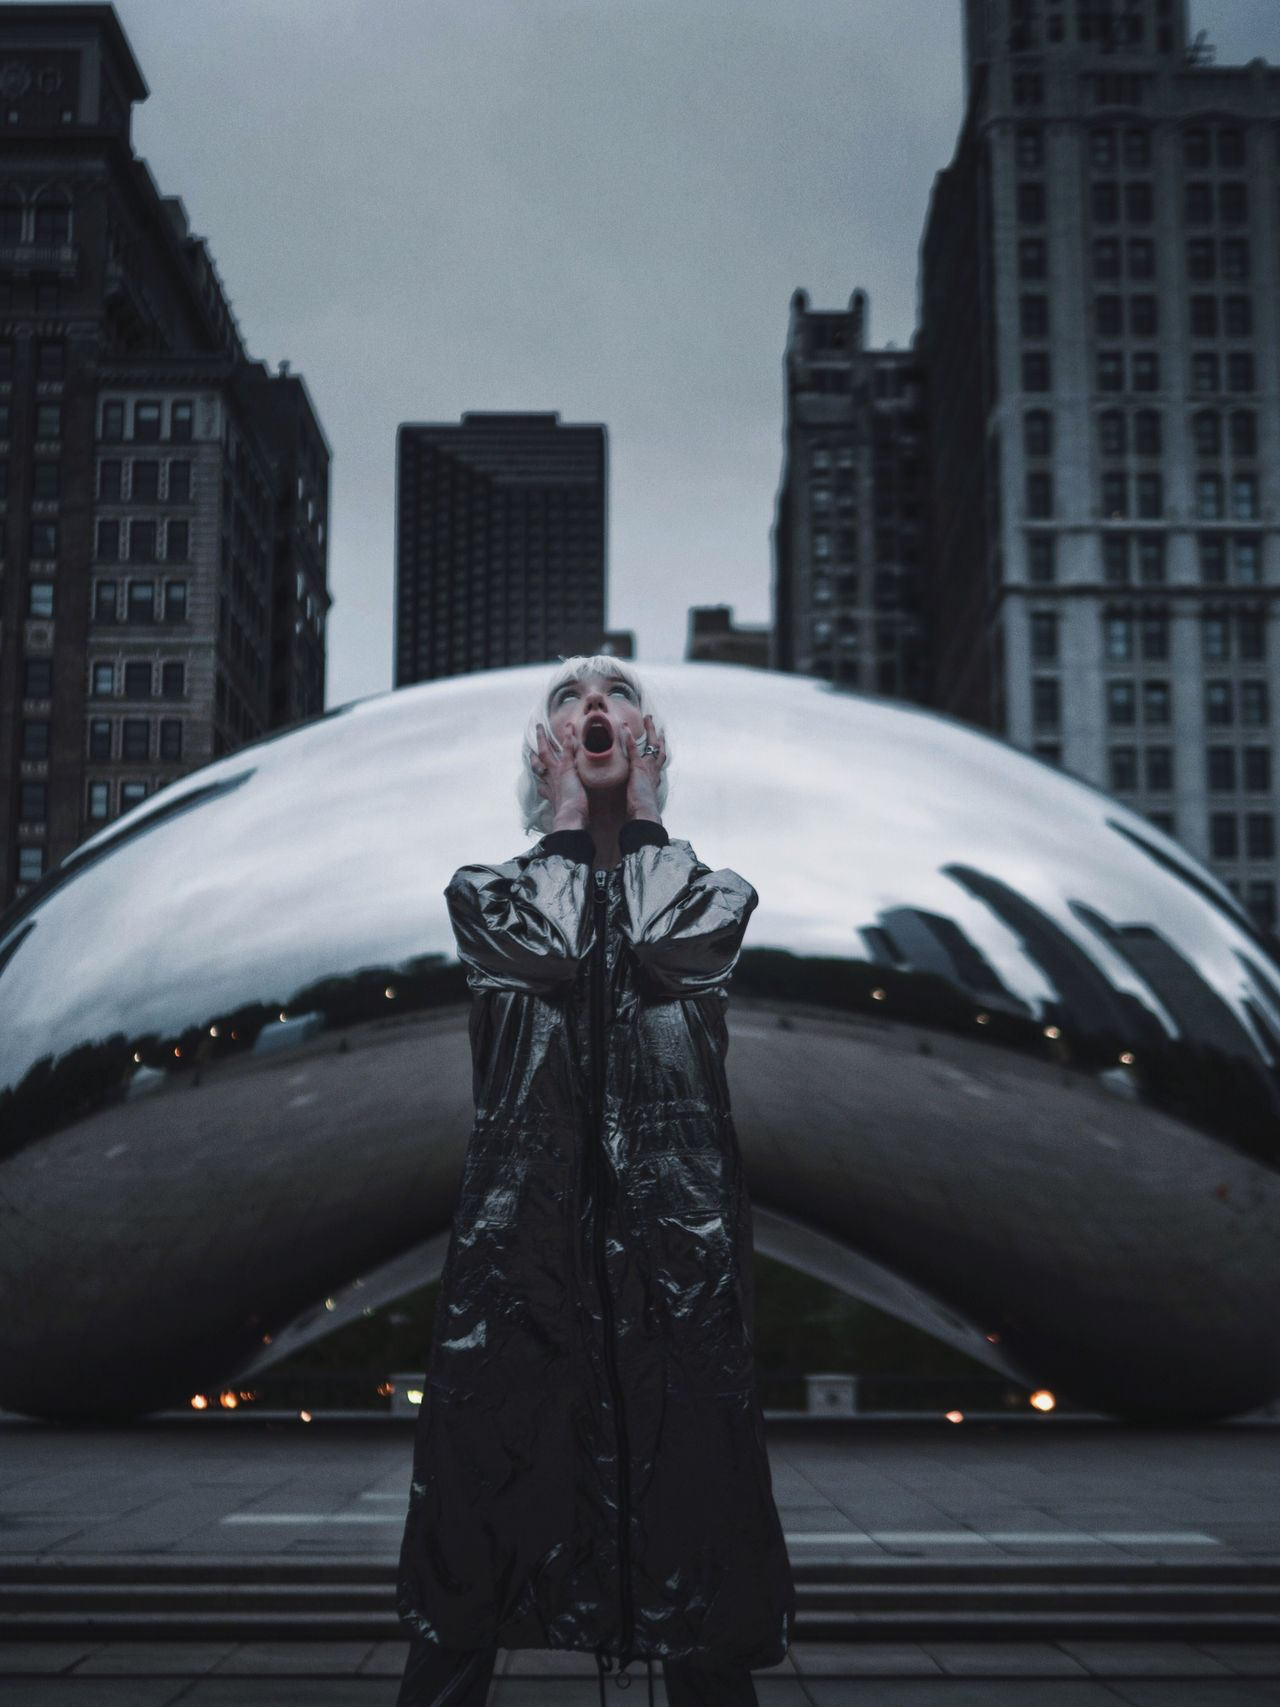 😱 Reflection Women Who Inspire You Beangames Chicago Urban Geometry Science Fiction Futuristic Portrait Fashion EyeEm Best Shots Absrtact Sky Dramatic Sky